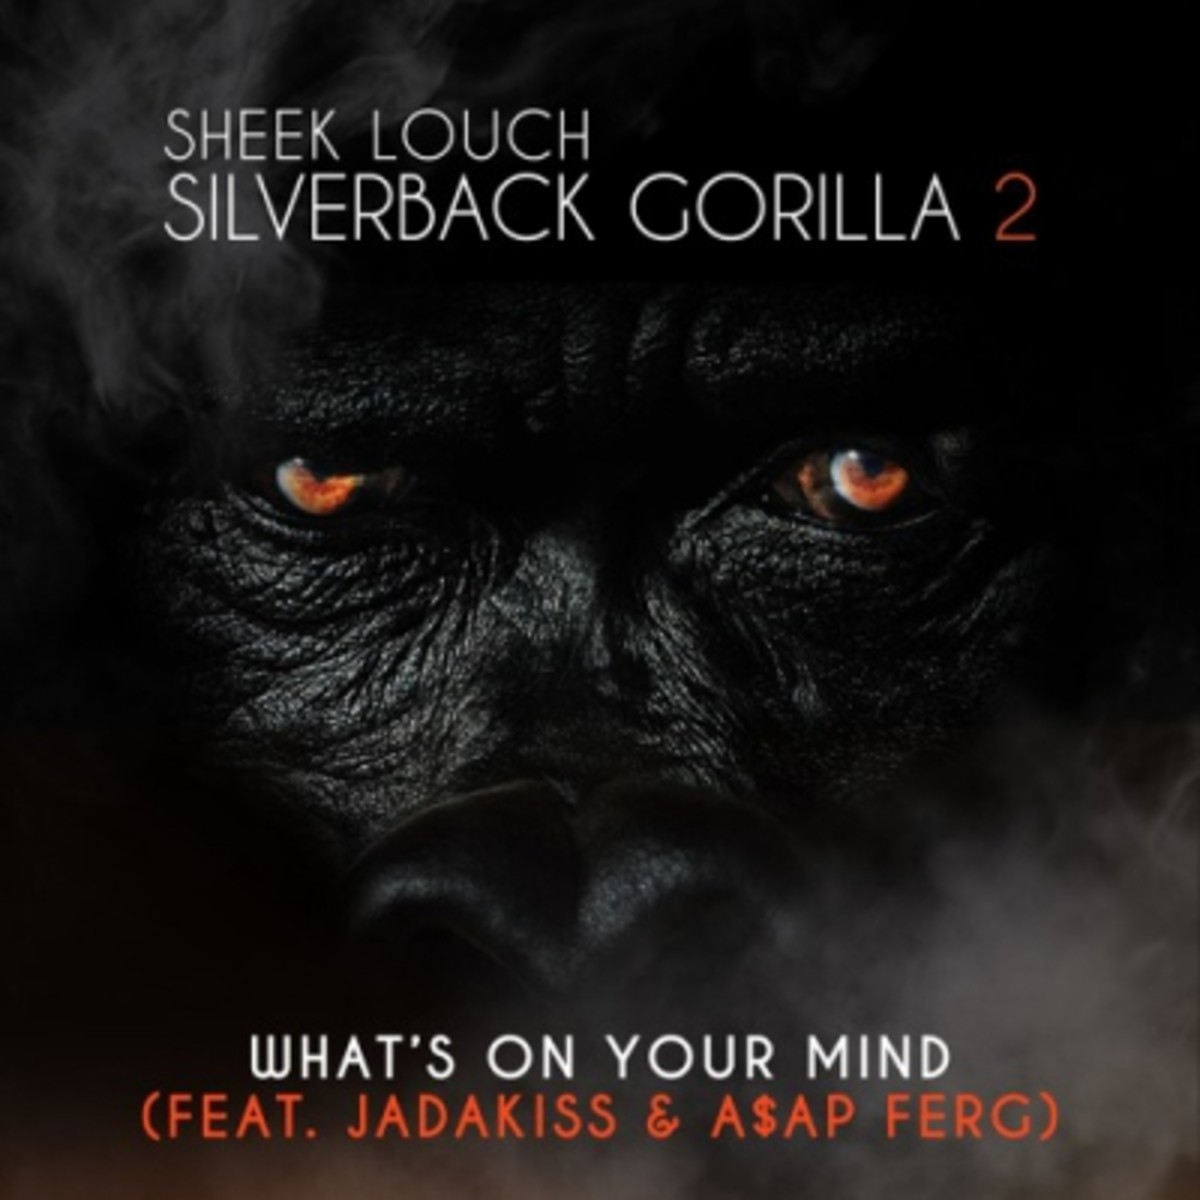 sheek-louch-whats-on-your-mind.jpg